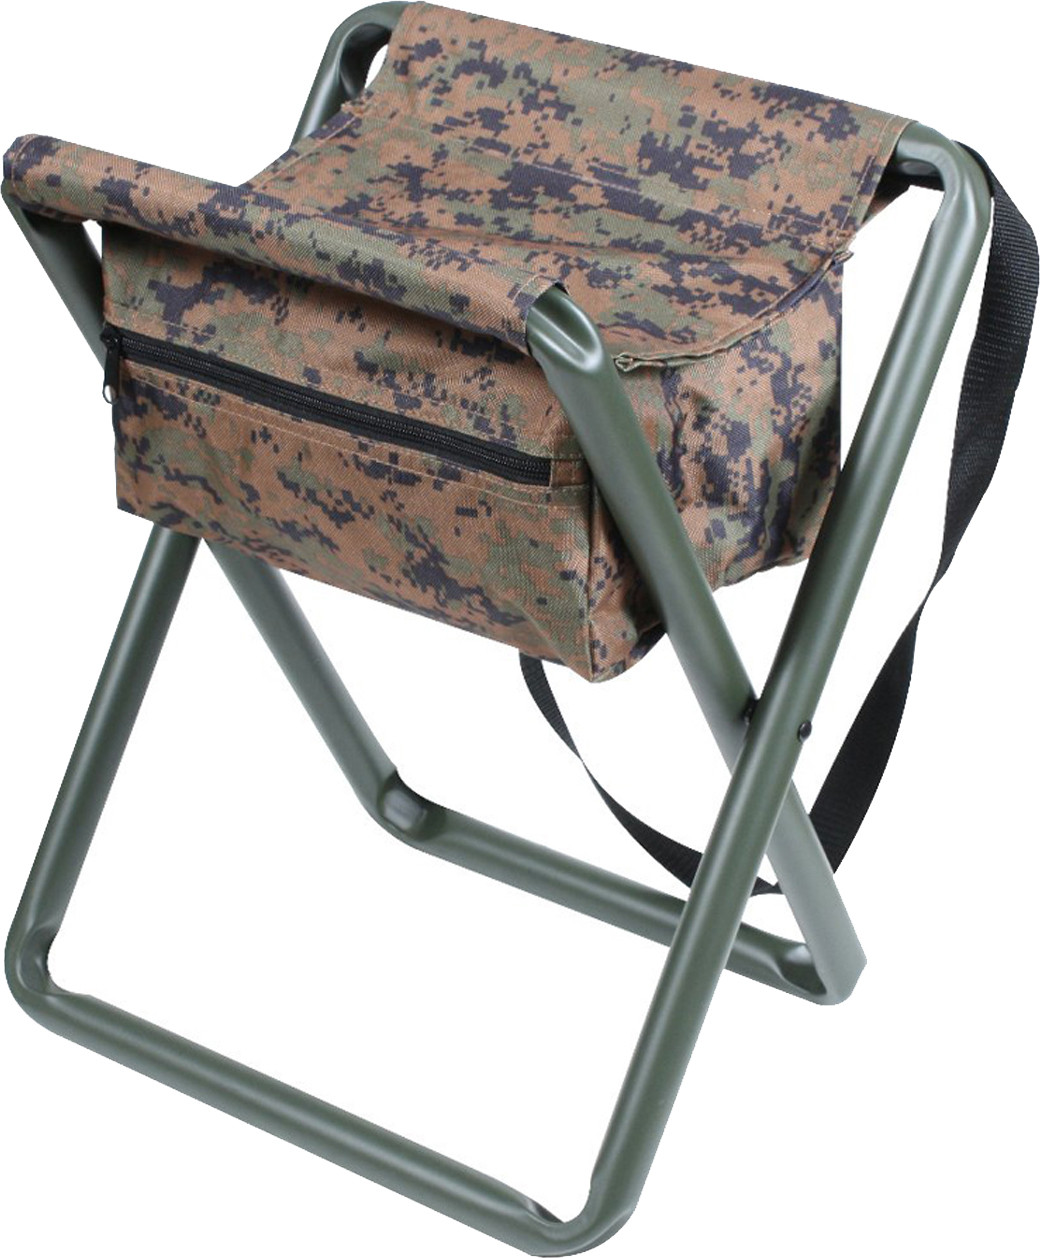 Amazing Us Army Folding Stool Folding Stool Without Armrest Woodland Inzonedesignstudio Interior Chair Design Inzonedesignstudiocom